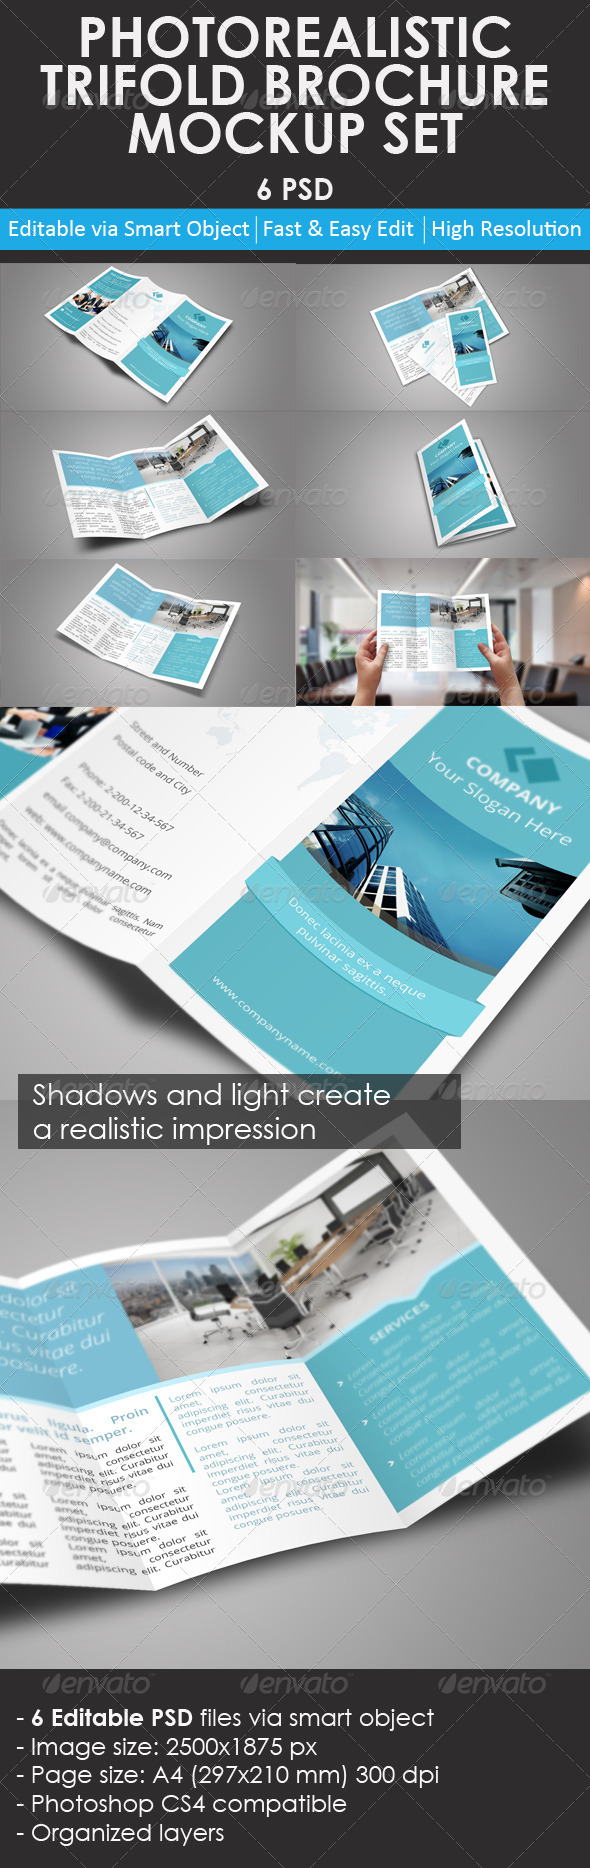 GraphicRiver Trifold Brochure Mockup Set 8771144